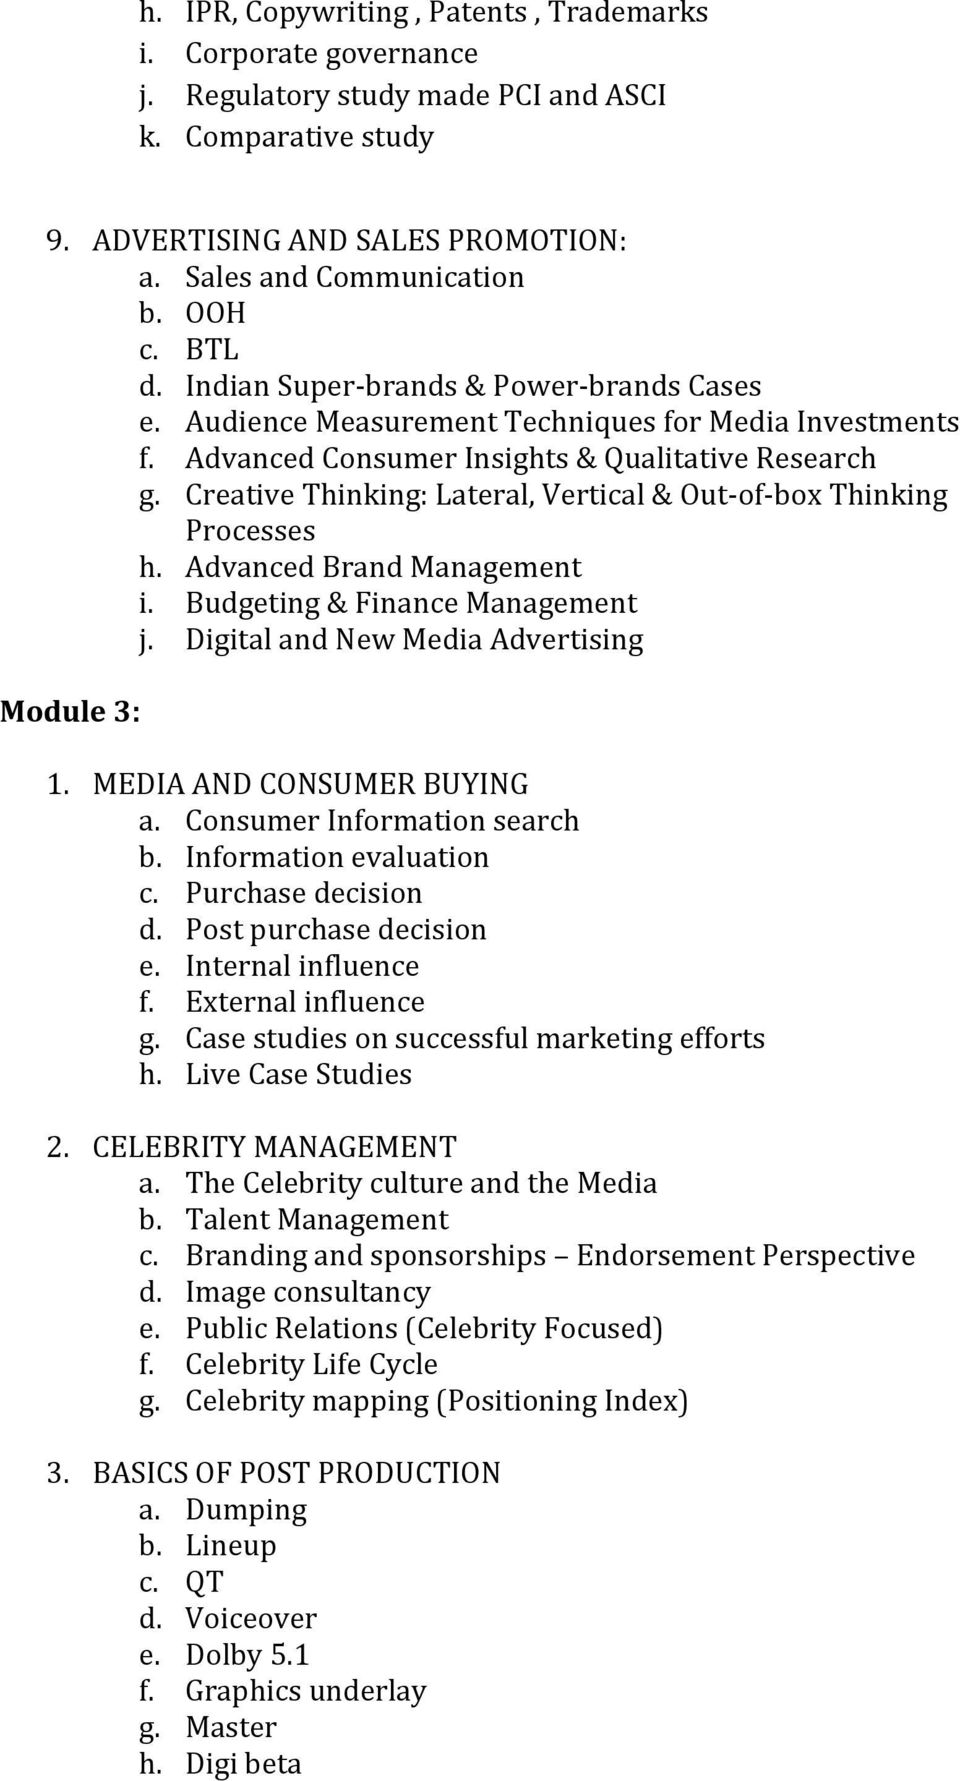 Creative Thinking: Lateral, Vertical & Out-of-box Thinking Processes h. Advanced Brand Management i. Budgeting & Finance Management j. Digital and New Media Advertising Module 3: 1.